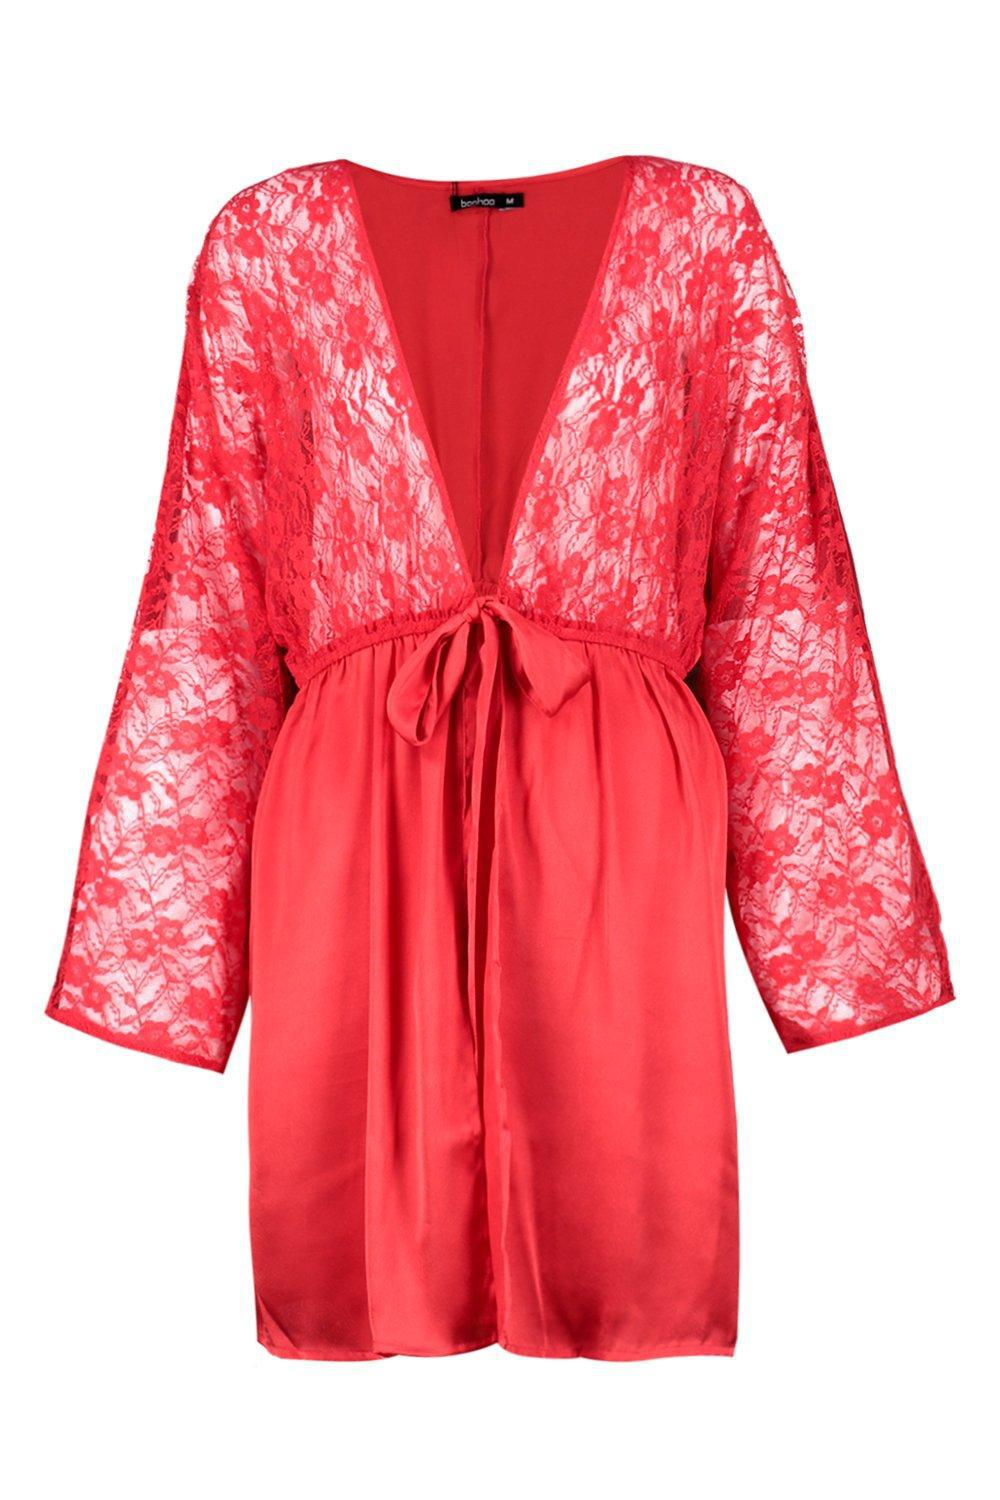 7ec0504956 Boohoo Summer Bridal Lace Short Satin Night Robe in Red - Lyst